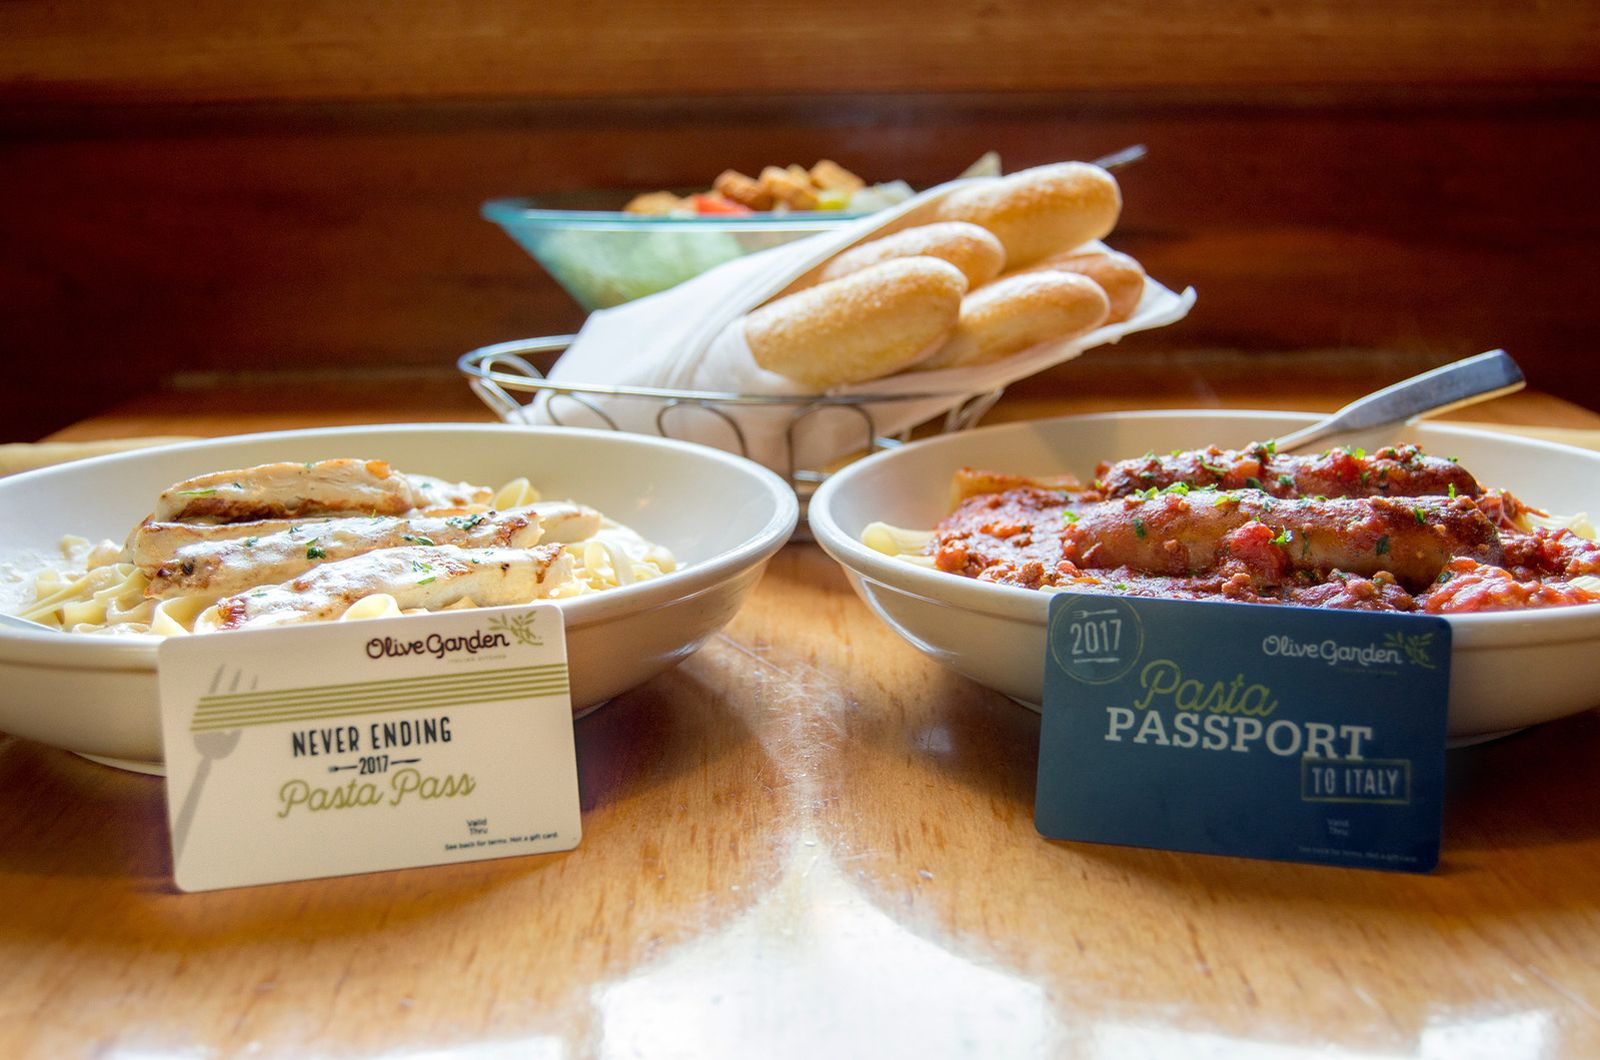 Olive Garden Introduces $200 \'Pasta Passport to Italy\' to Celebrate ...